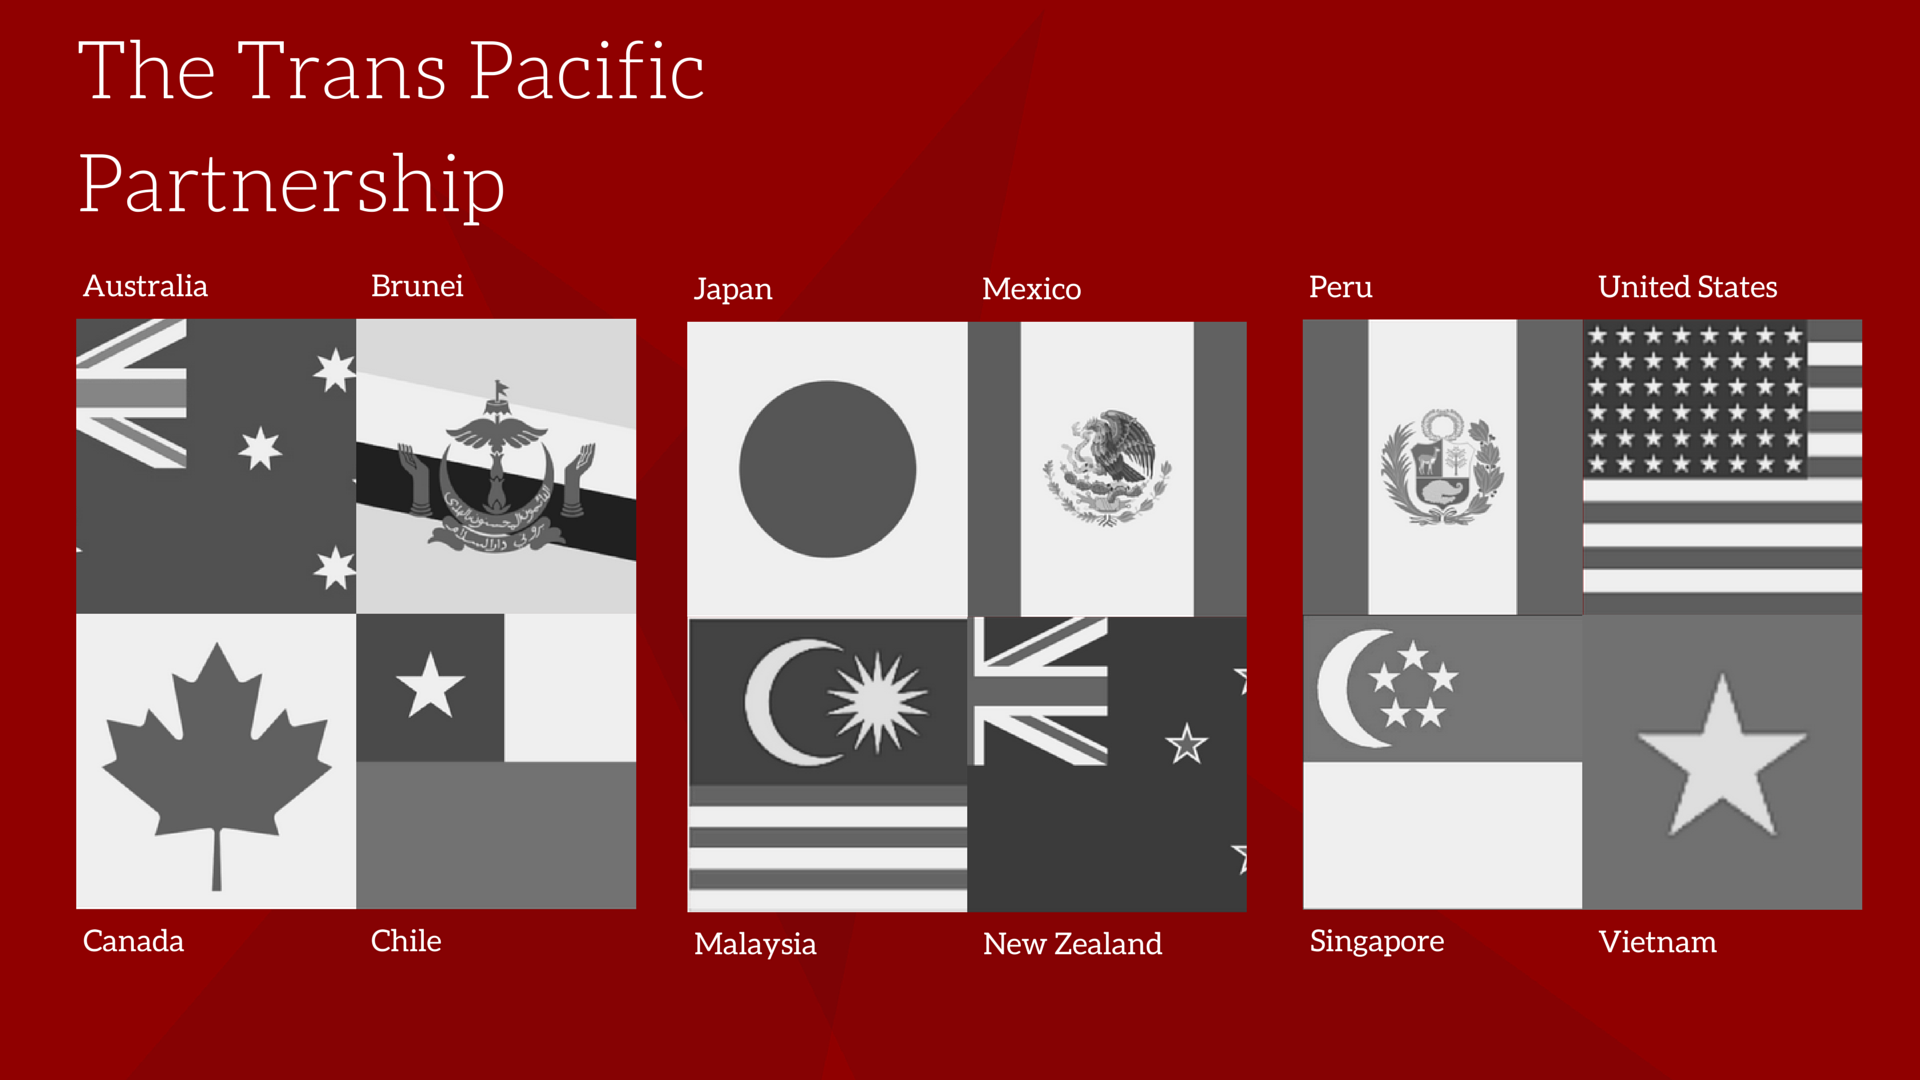 who are the 12 nations taking part in the TPP?